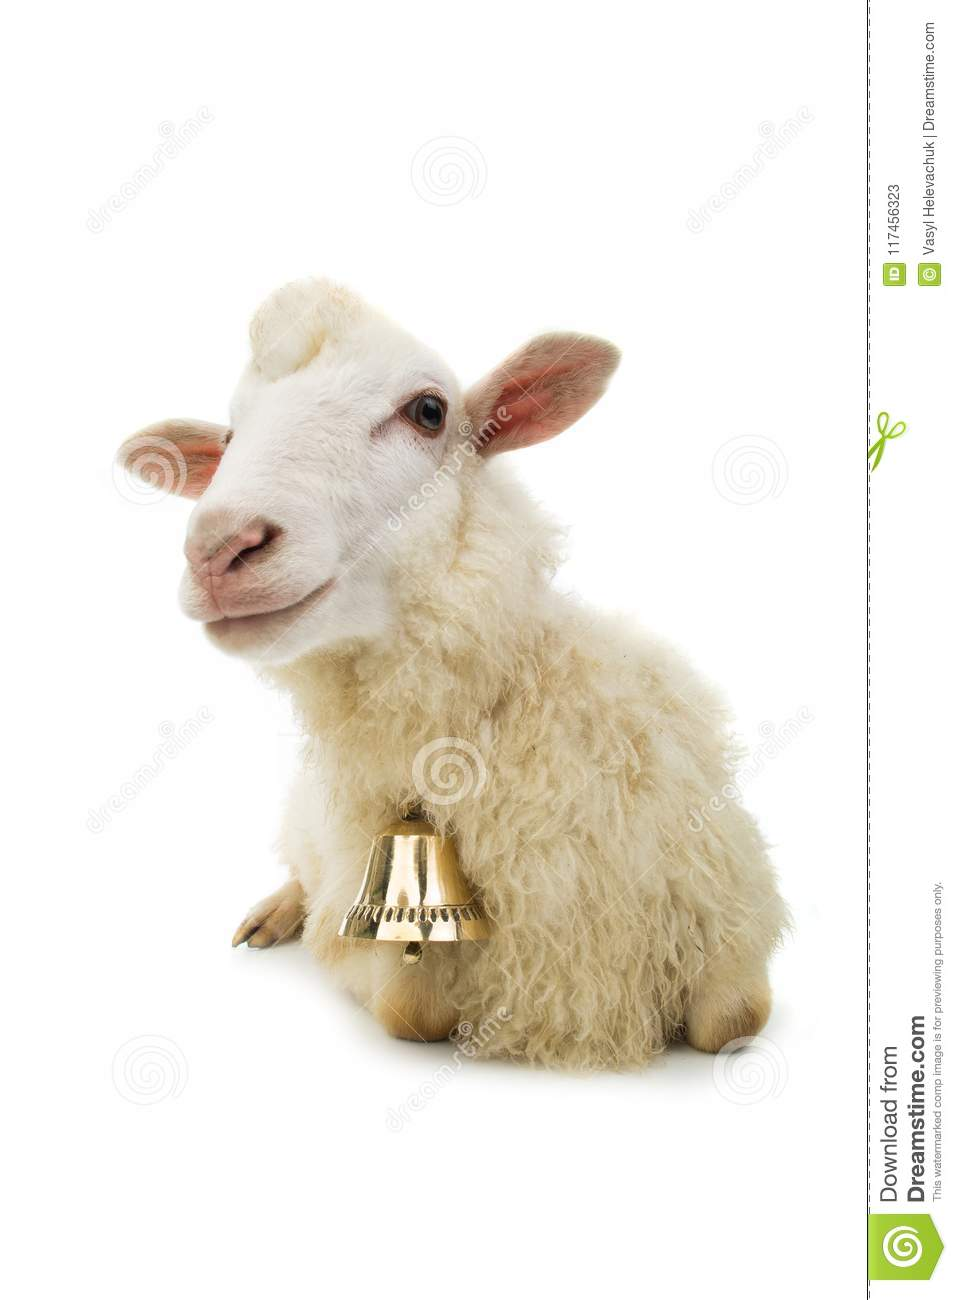 Sheep with bell